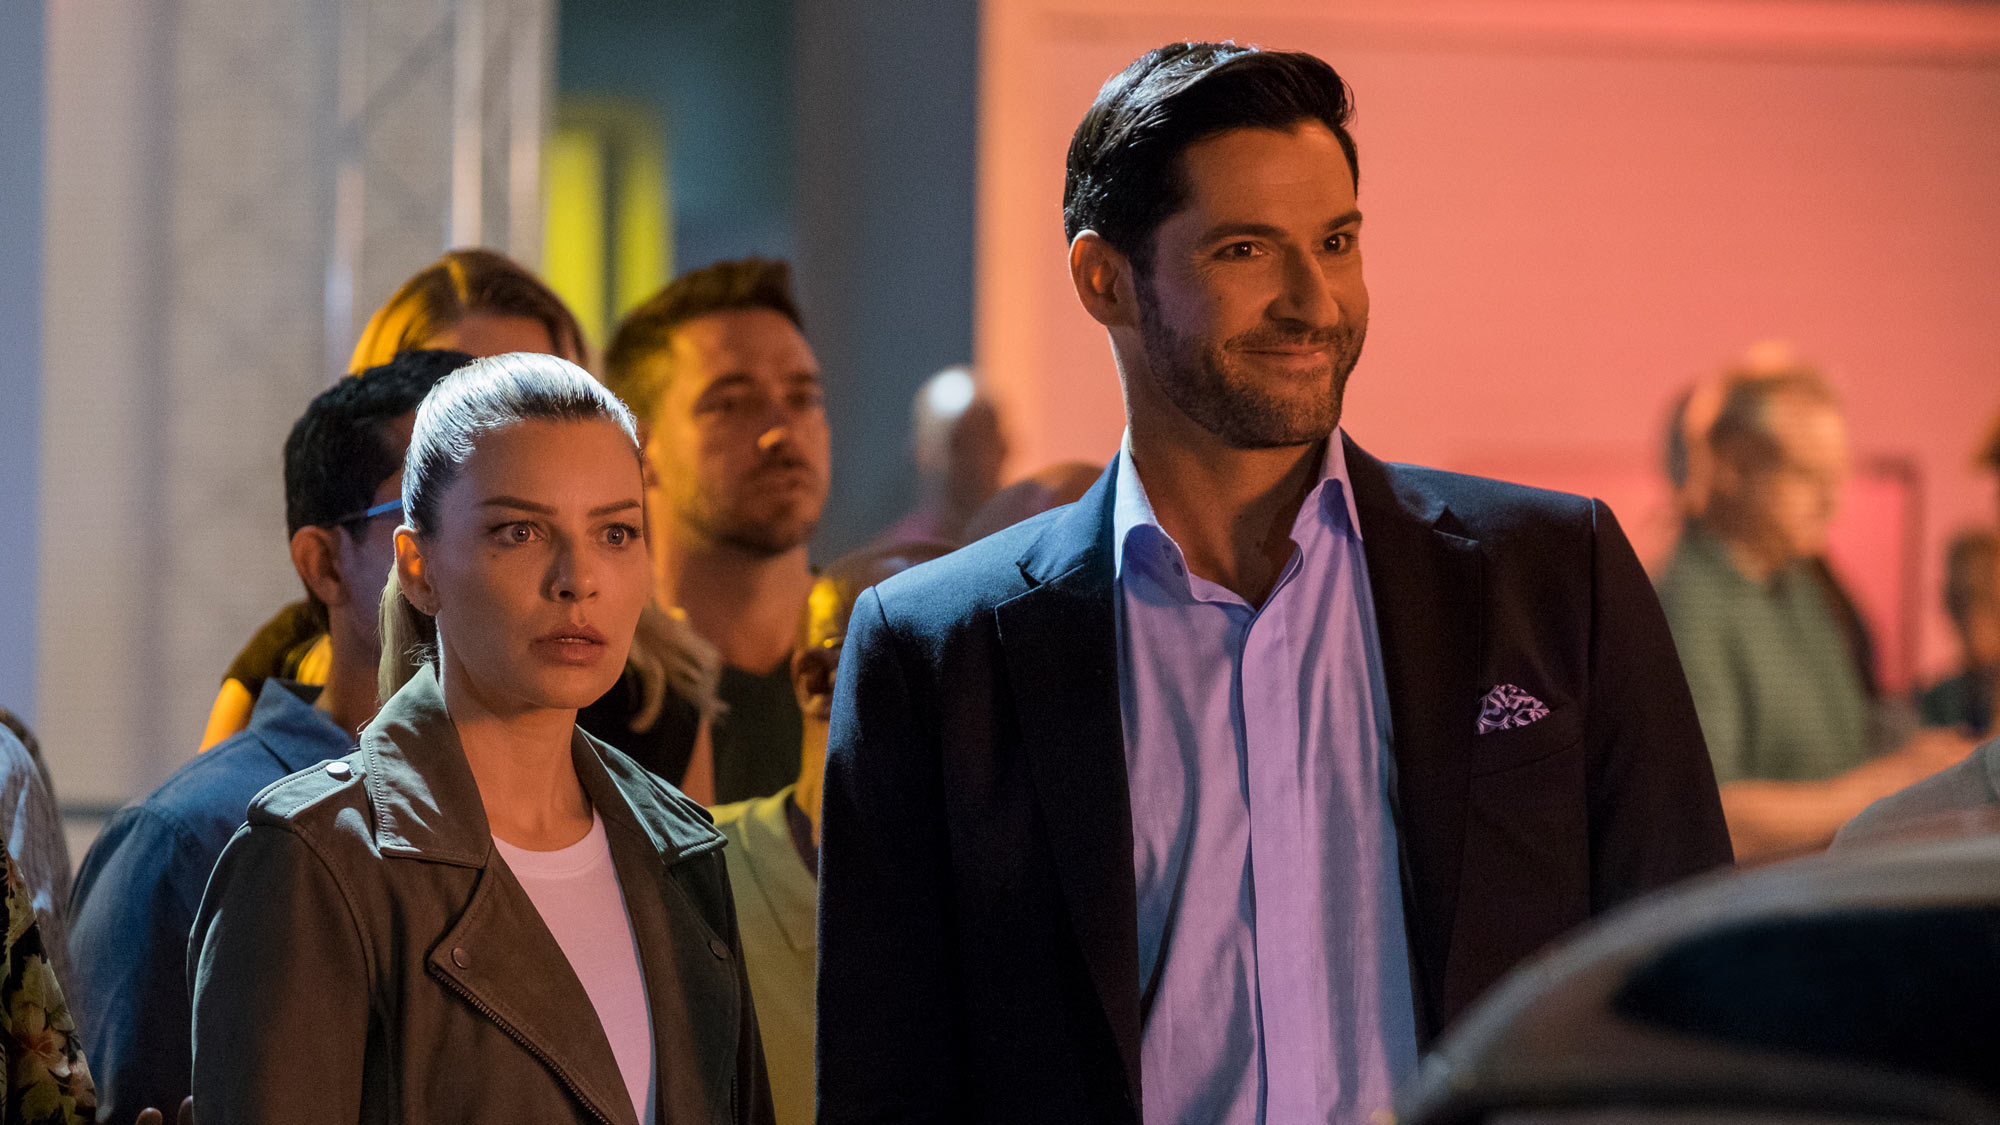 Lucifer season 5 part 2 release date, episodes, trailer and latest news |  Tom's Guide